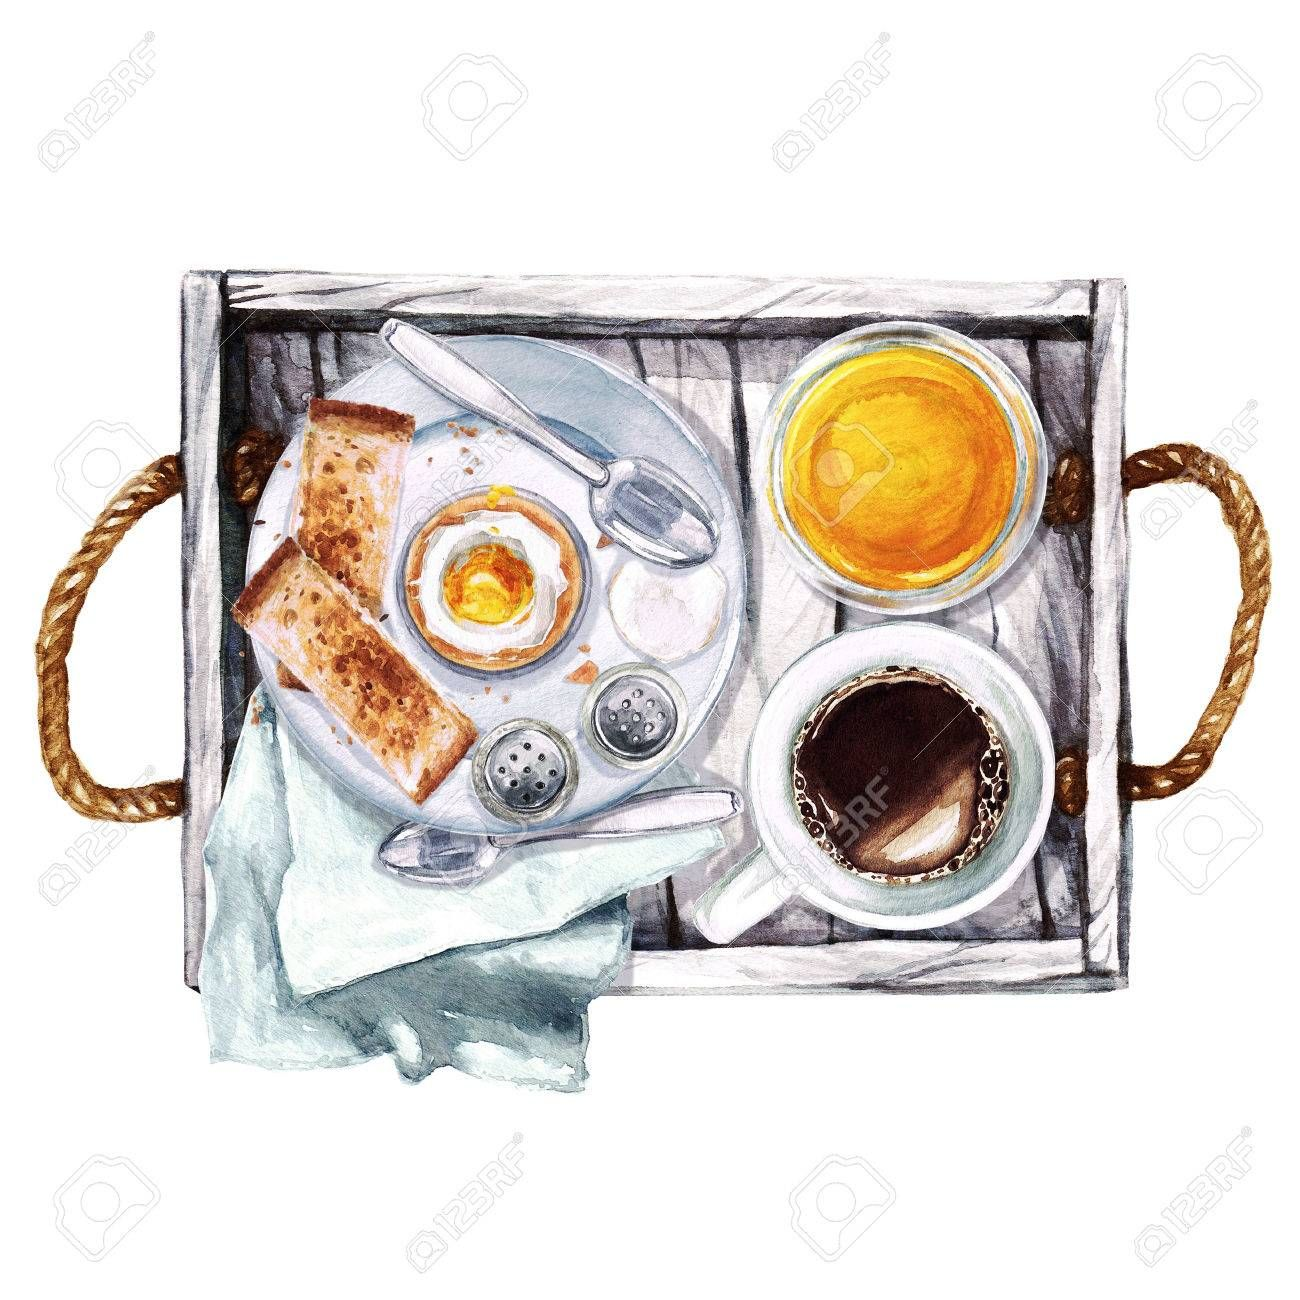 Breakfast Watercolor Illustration Affiliate Breakfast Watercolor Illustration Anime Nghệ Thuật Thức ăn